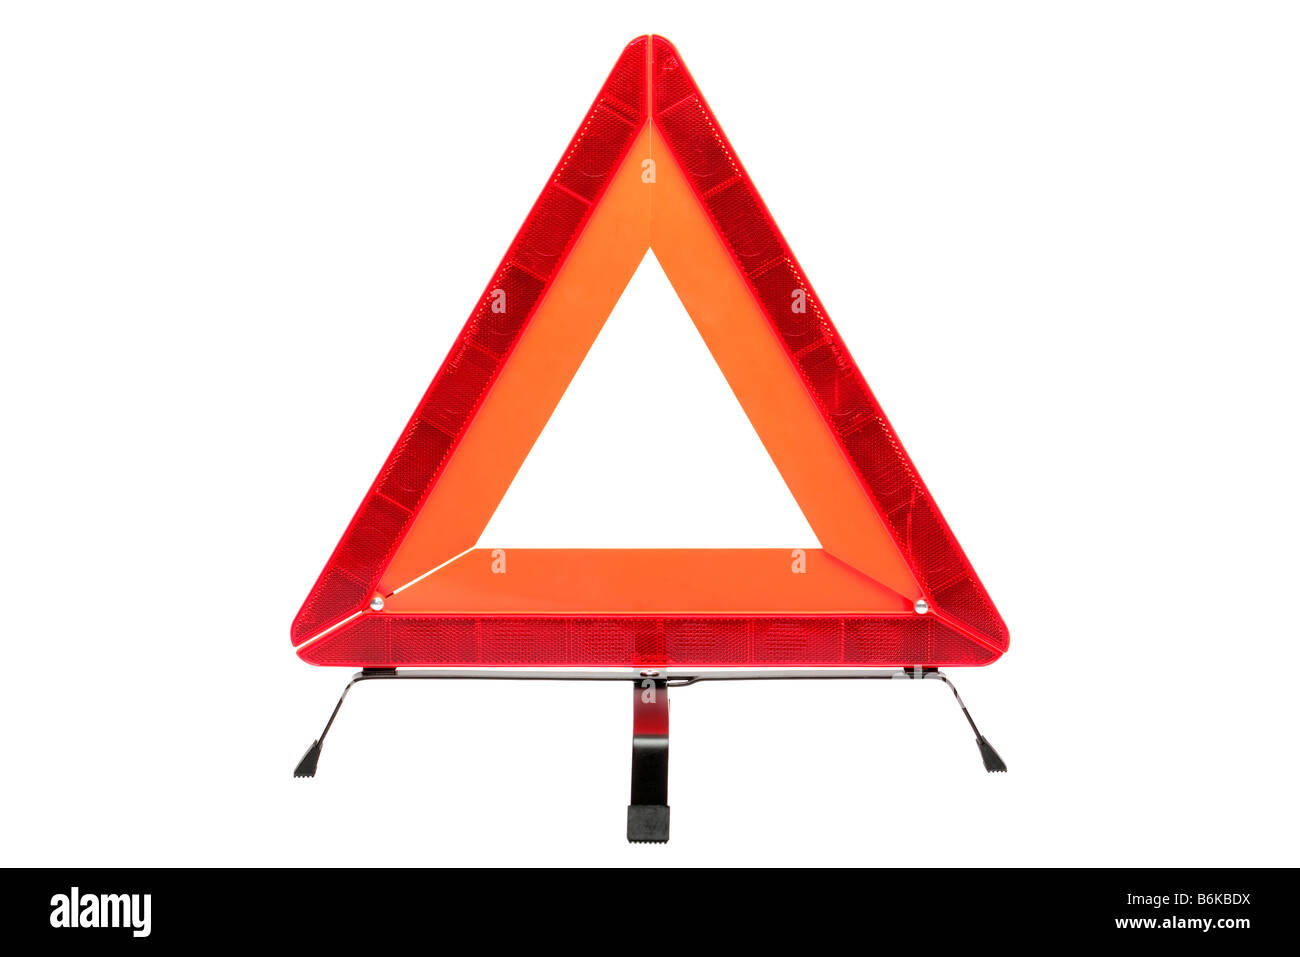 Hazard warning triangle isolated on a white background - Stock Image